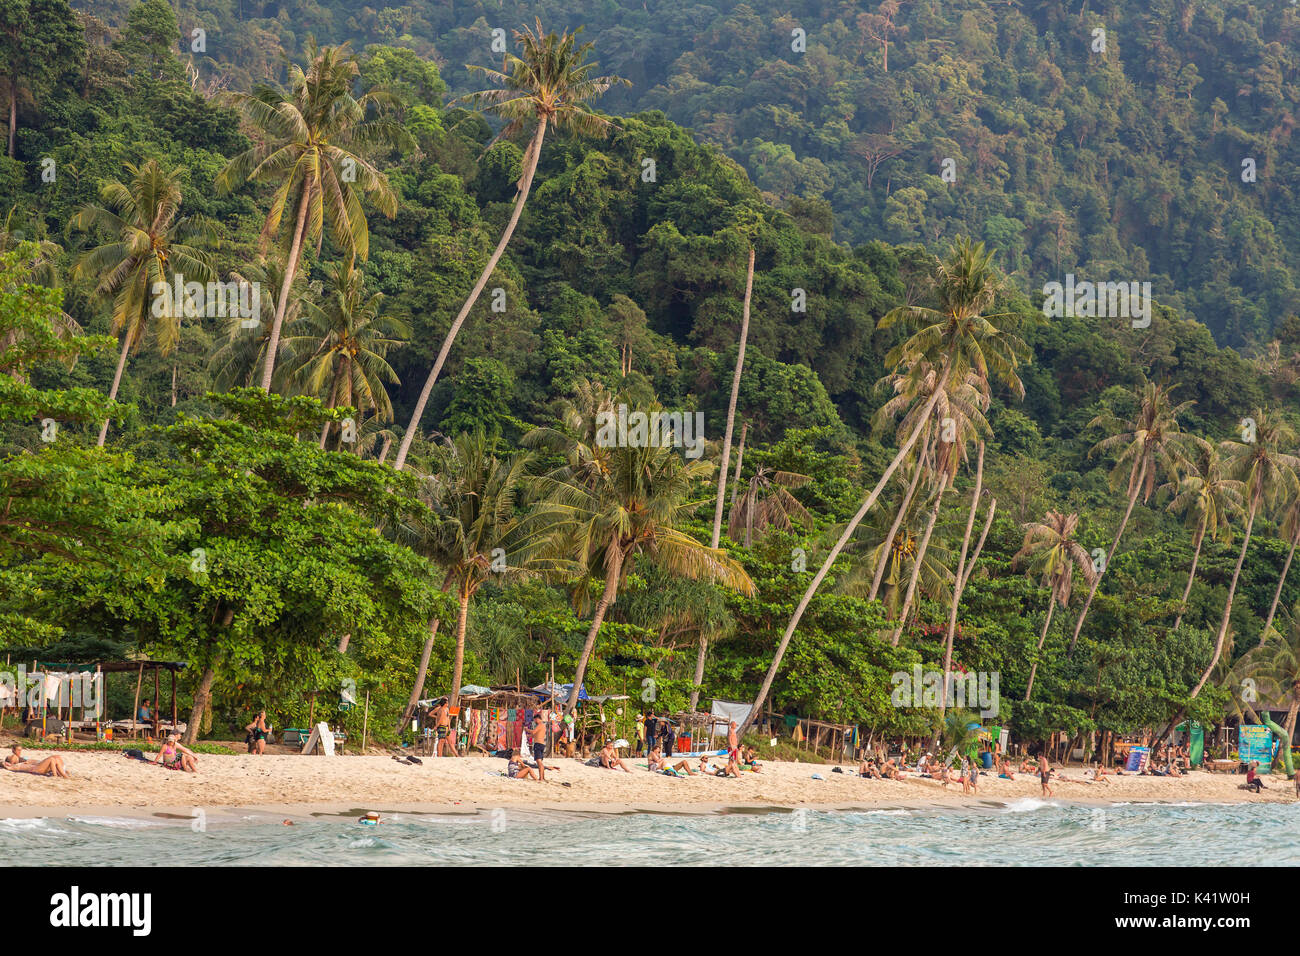 Koh Chang, Thailand - March 19, 2017: Lonely beach on Koh Chang island during sunset in Thailand - Stock Image